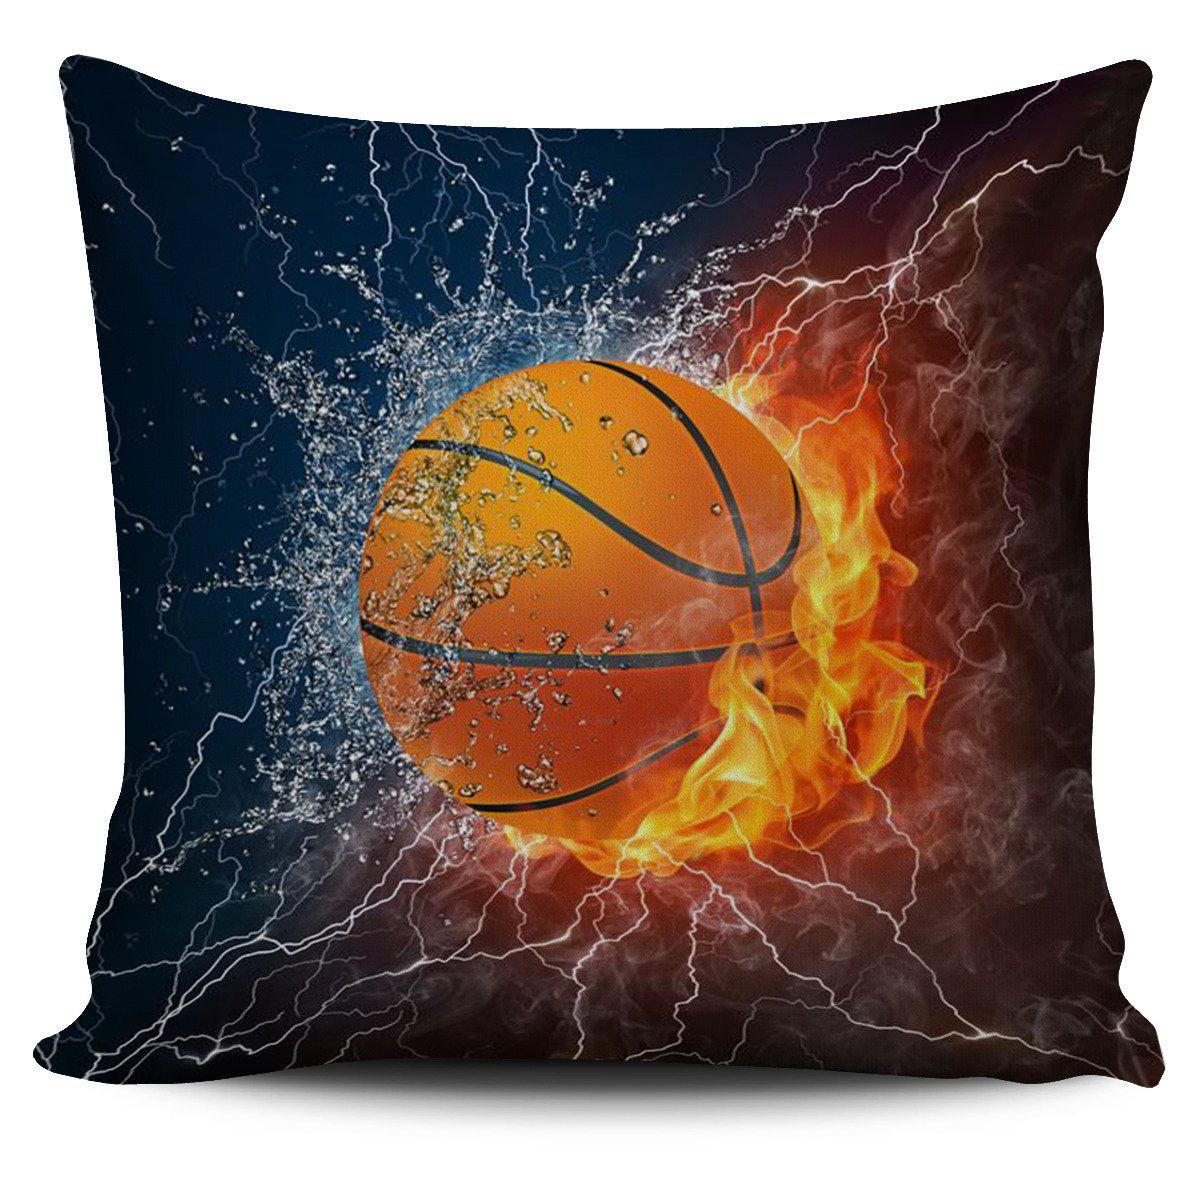 Shopeholic:Basketball Pillow Cover